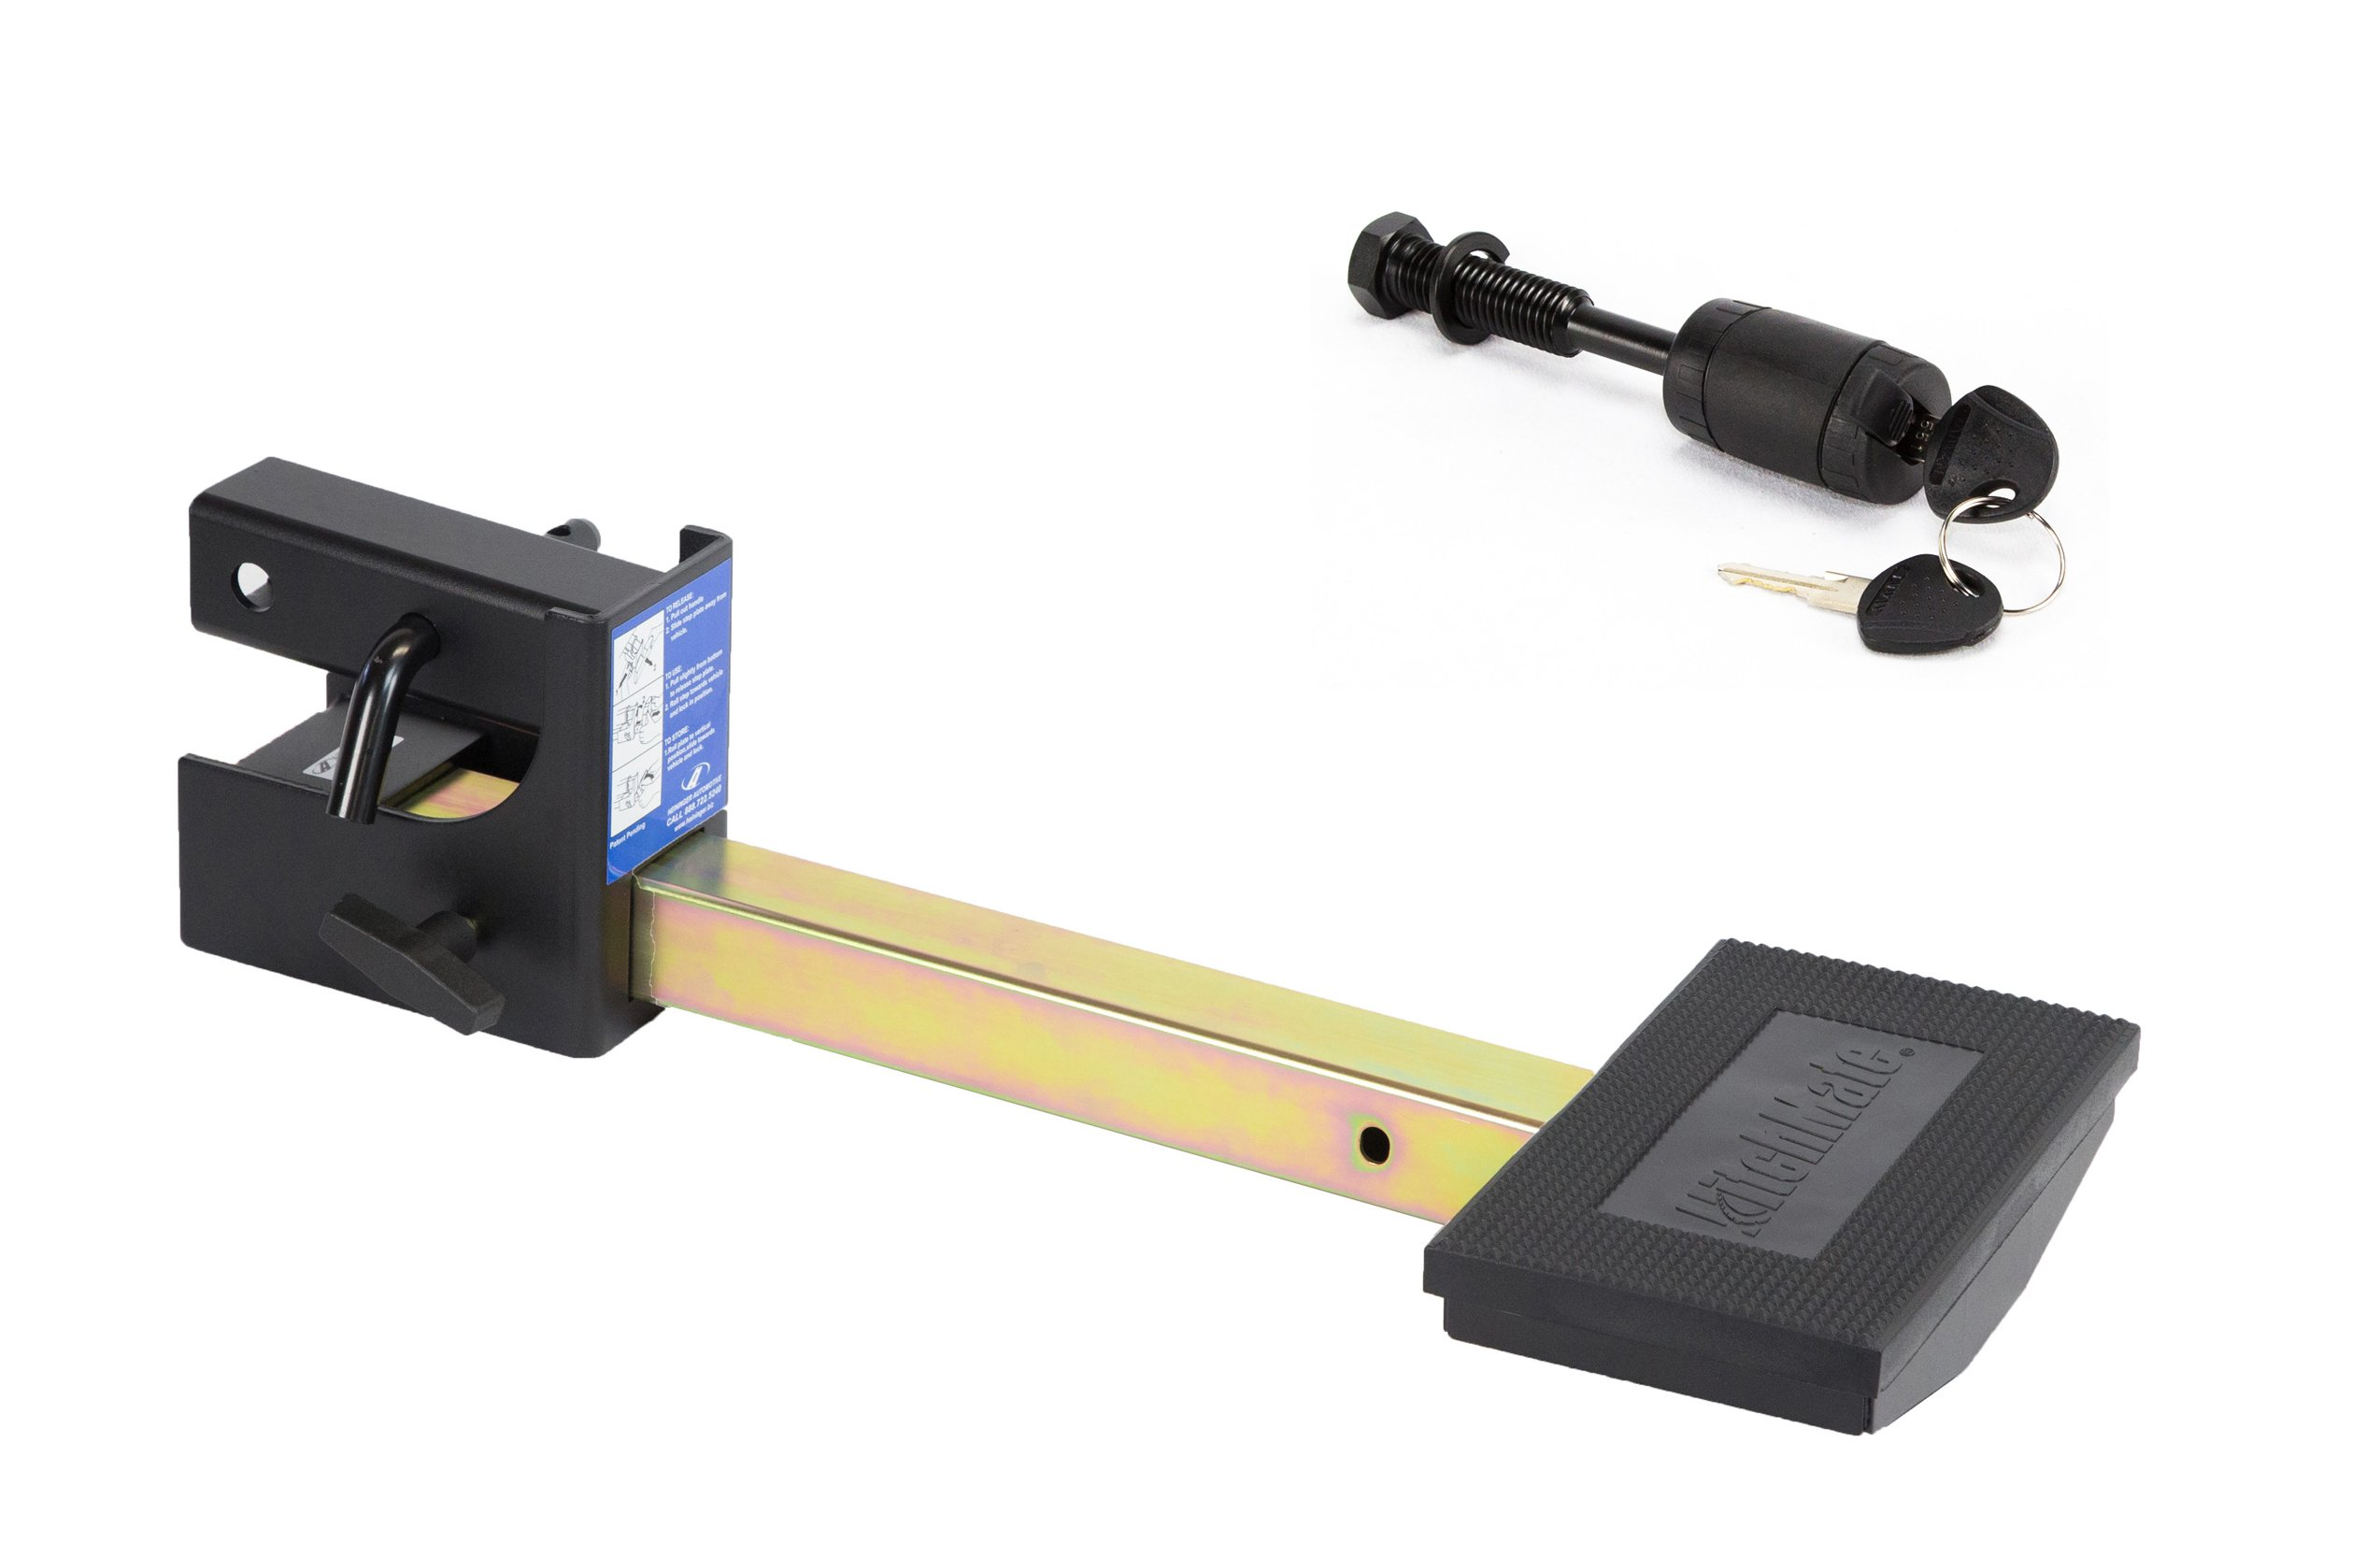 Heininger 4048 HitchMate TruckStep for 2'' receivers with Anti-Wobble Device and Hitch Lock by Heininger